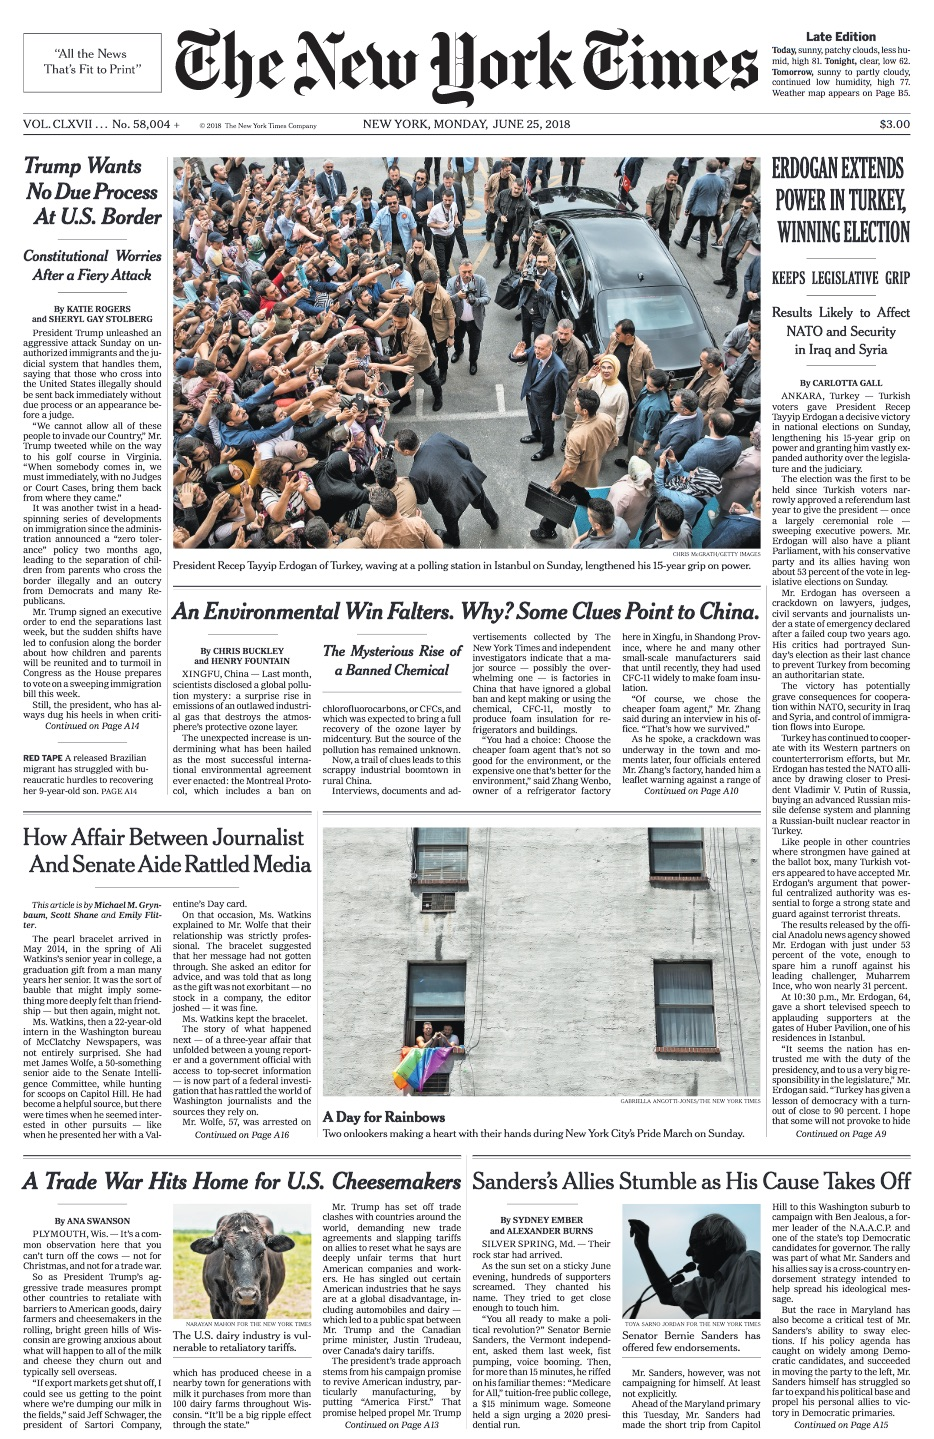 NYT_FrontPage_062518.jpg